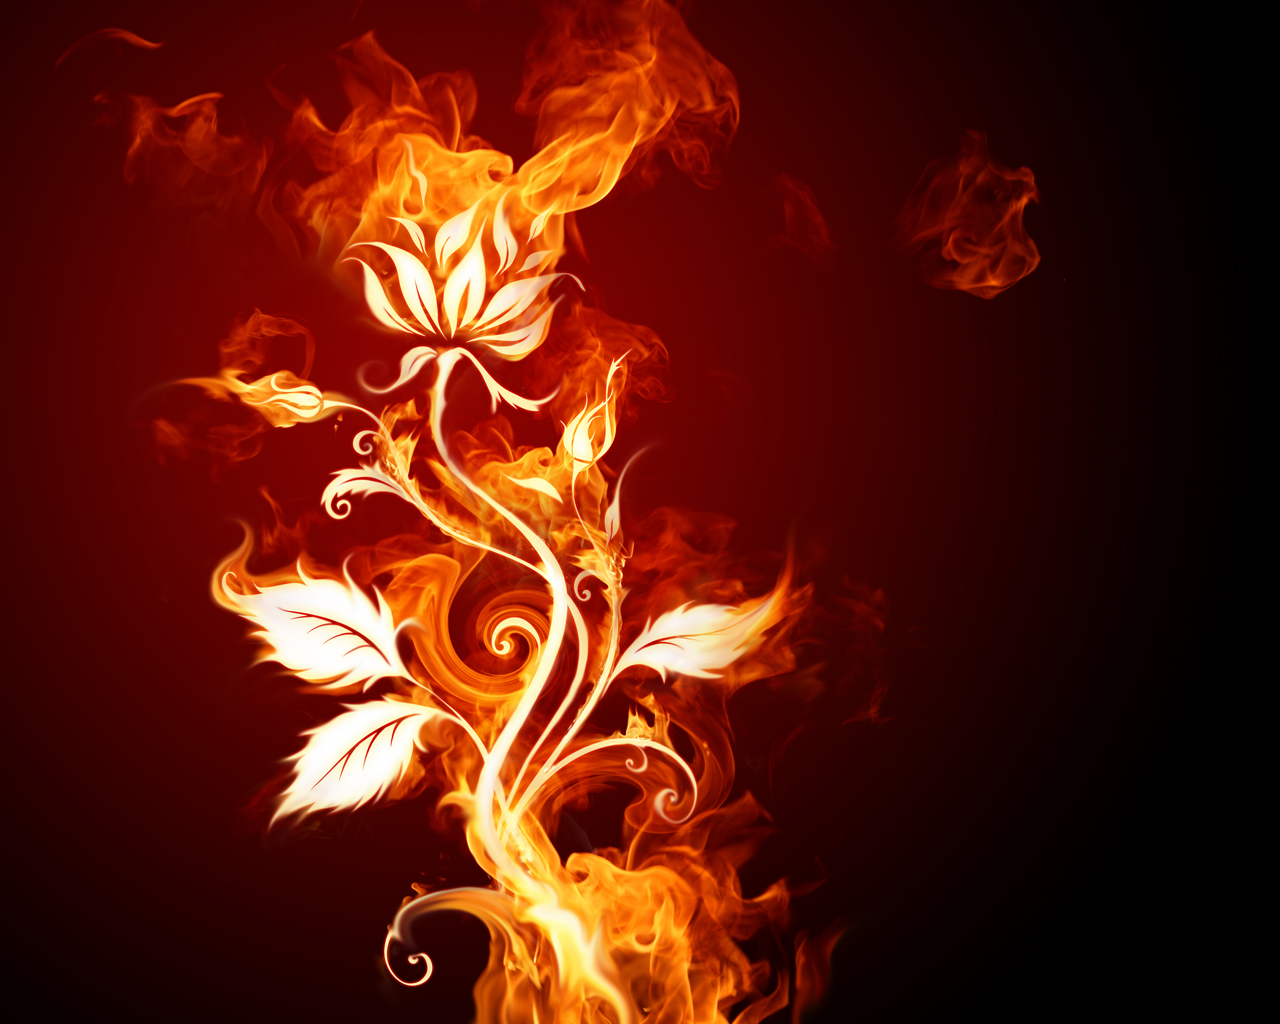 fire art hd background 7 in high resolution for this wallpaper 1280x1024